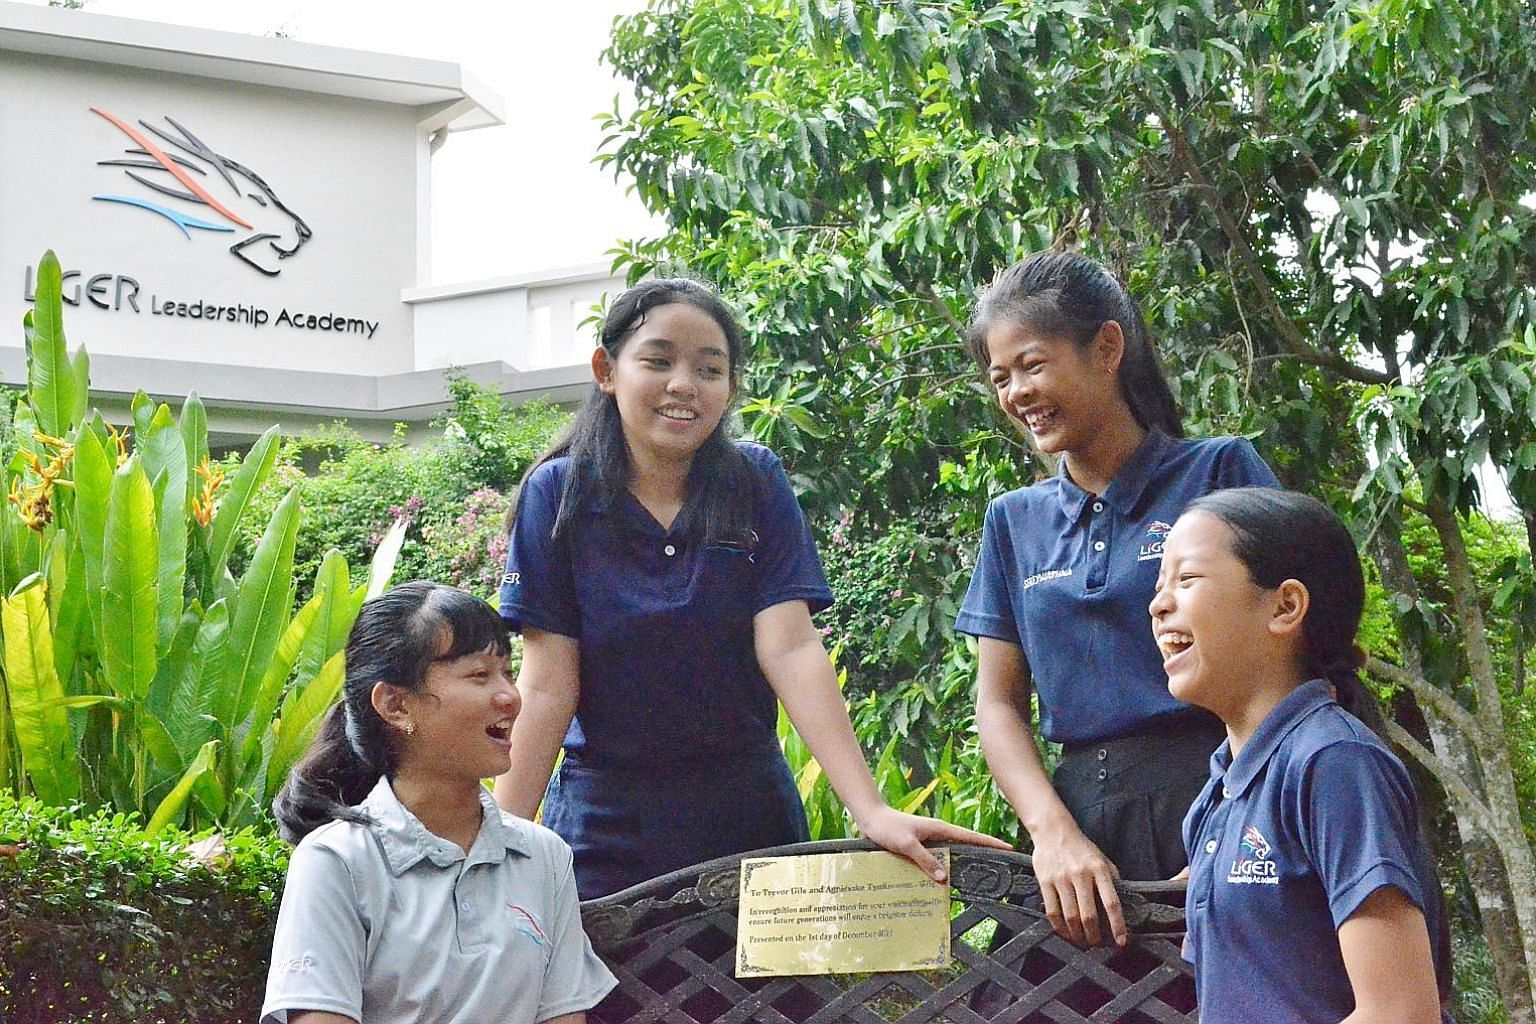 (From left) Students Angely Rose, 13, Yanich Khin, 14, Wathna Sao, 14, and Bopha Um, 13, are part of a team of five girls from Liger Leadership Academy who took part in Technovation Cambodia, a competition for girls to pitch technology-based ideas fo